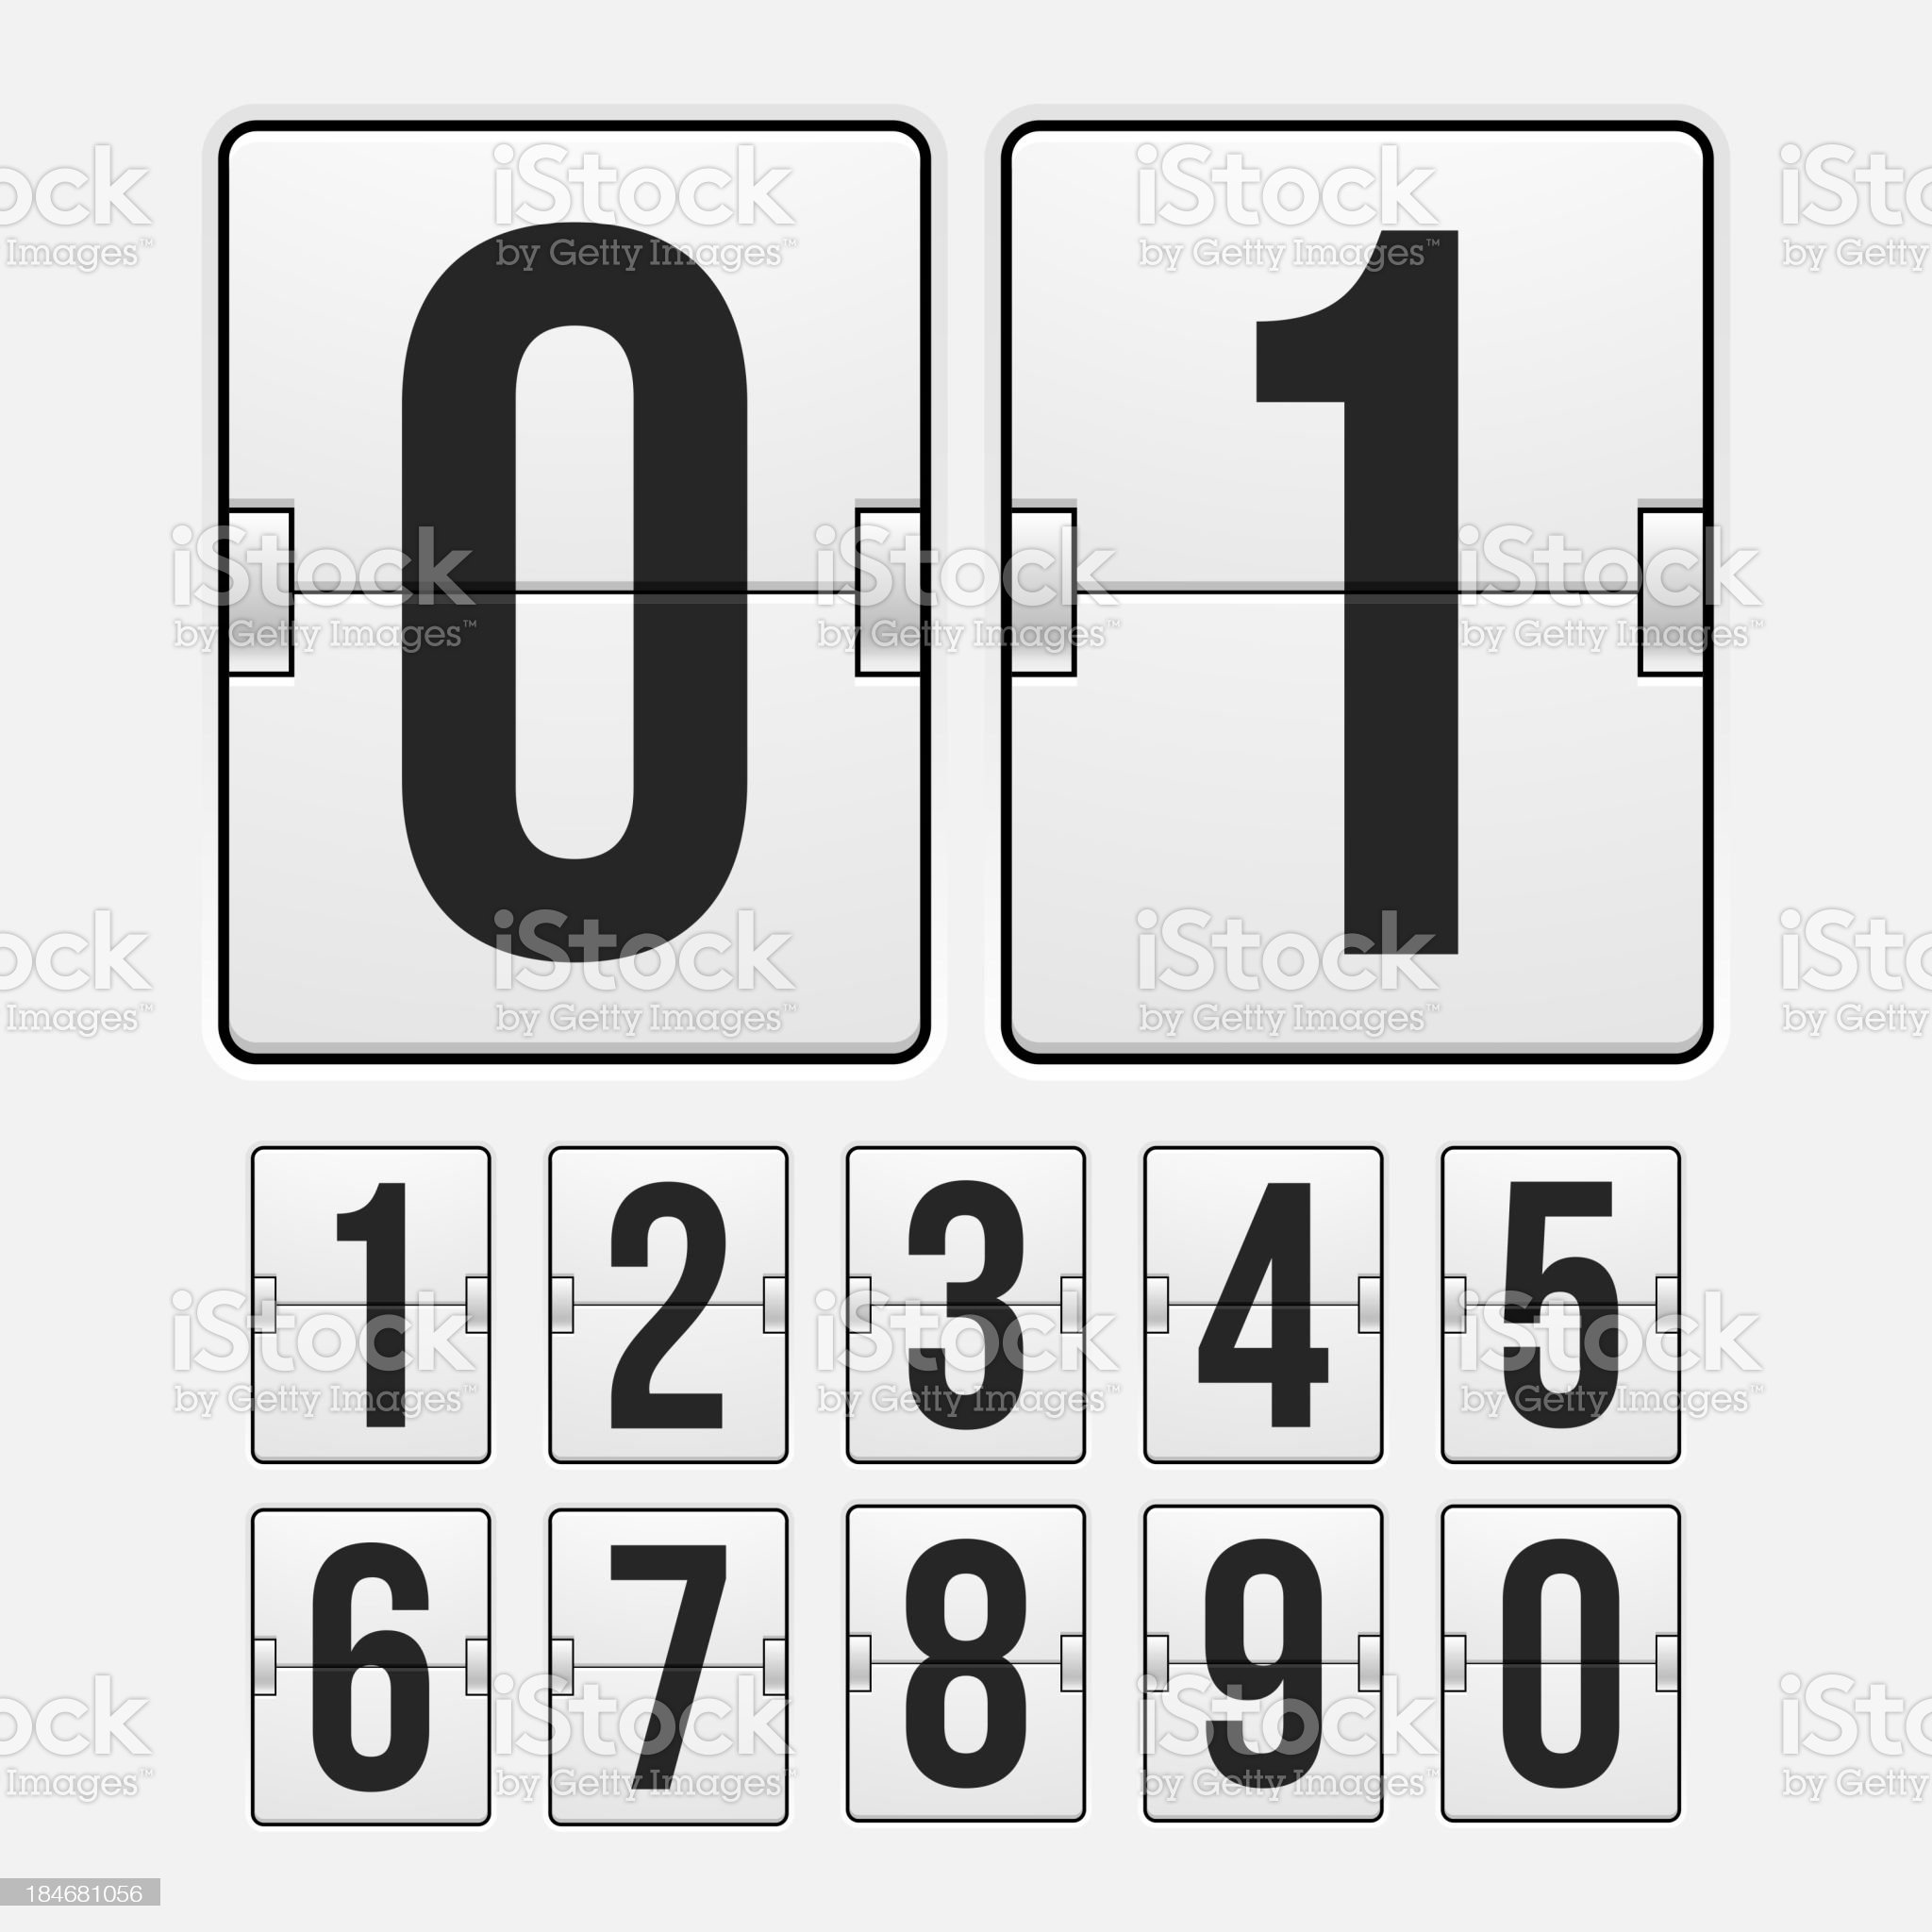 Countdown timer royalty-free stock vector art